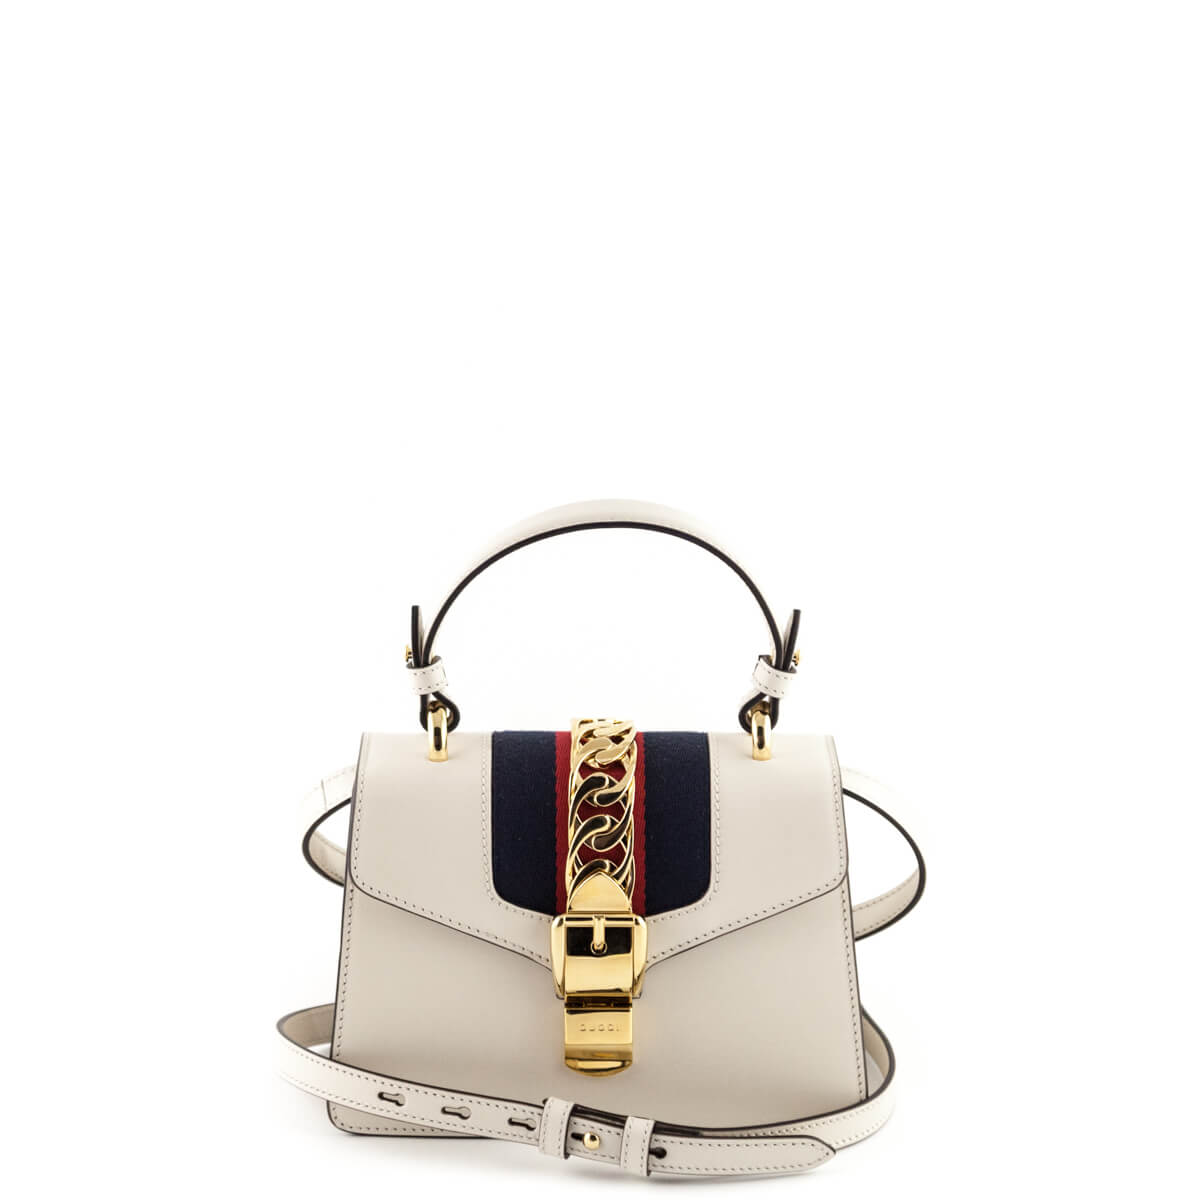 1a2d88d8920 Gucci White Mini Sylvie Bag - LOVE that BAG - Preowned Authentic Designer  Handbags ...